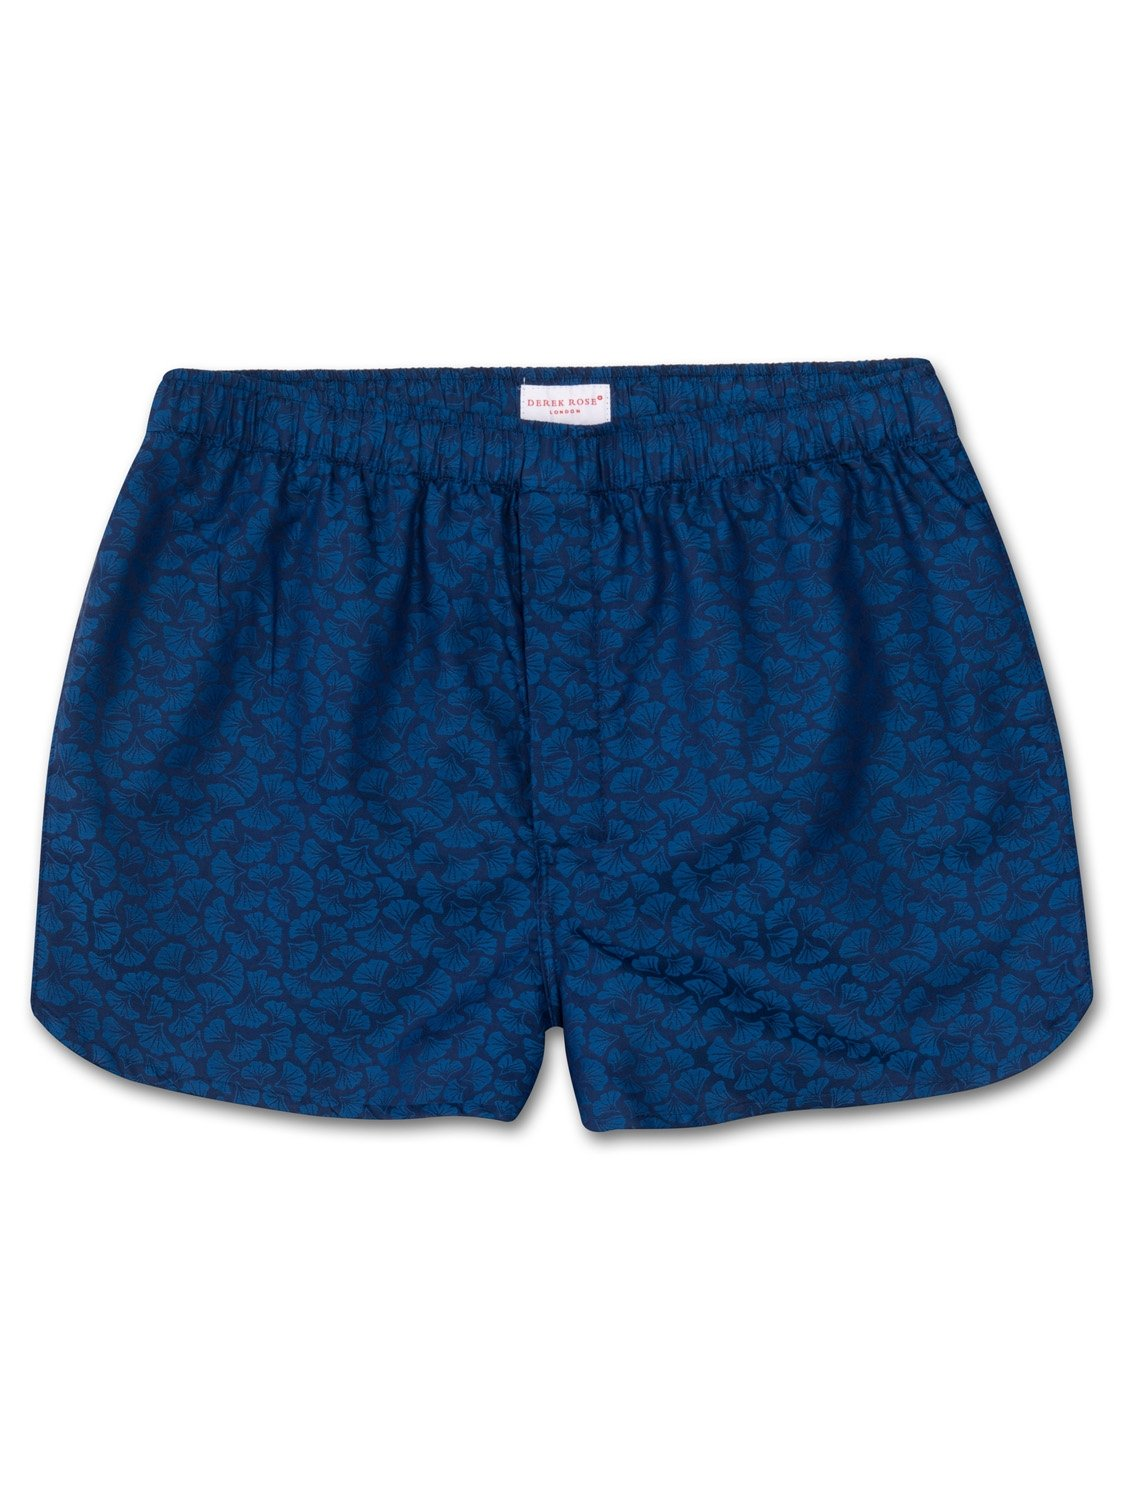 Men's Modern Fit Boxer Shorts Paris 14 Cotton Jacquard Navy